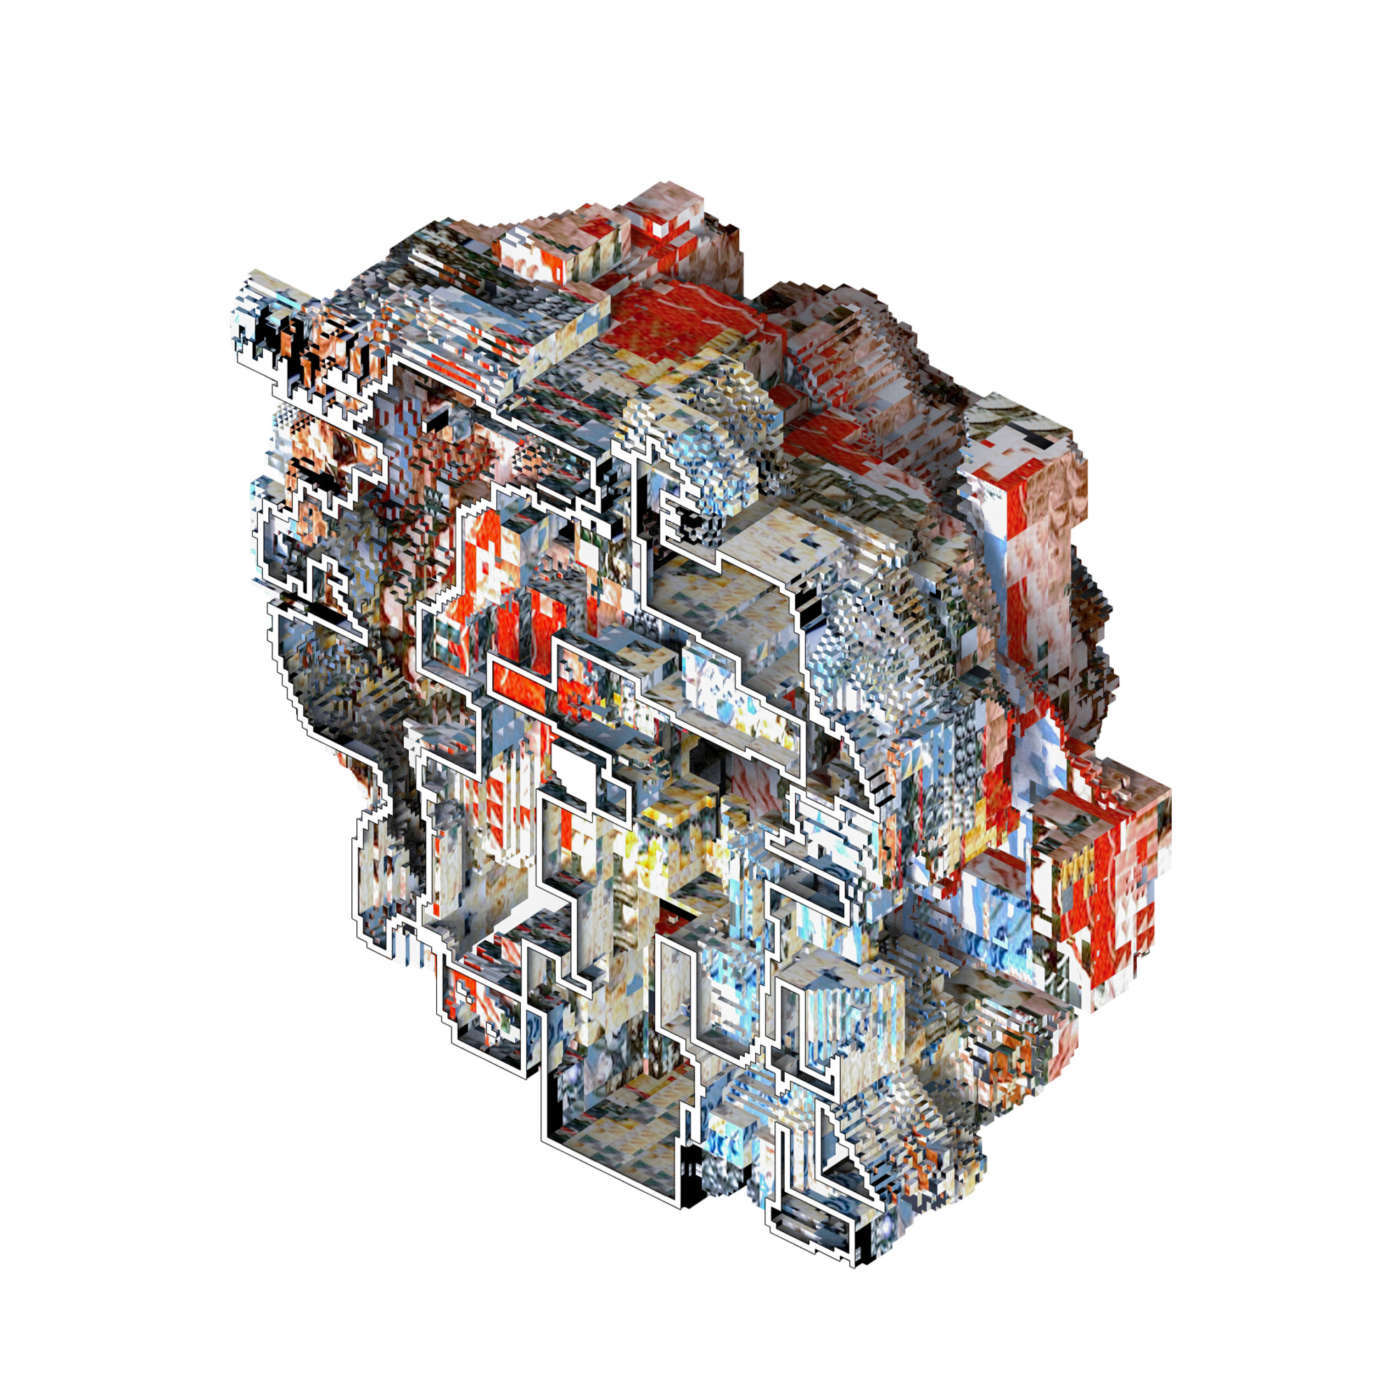 glitch effect red blue sectional isometric model